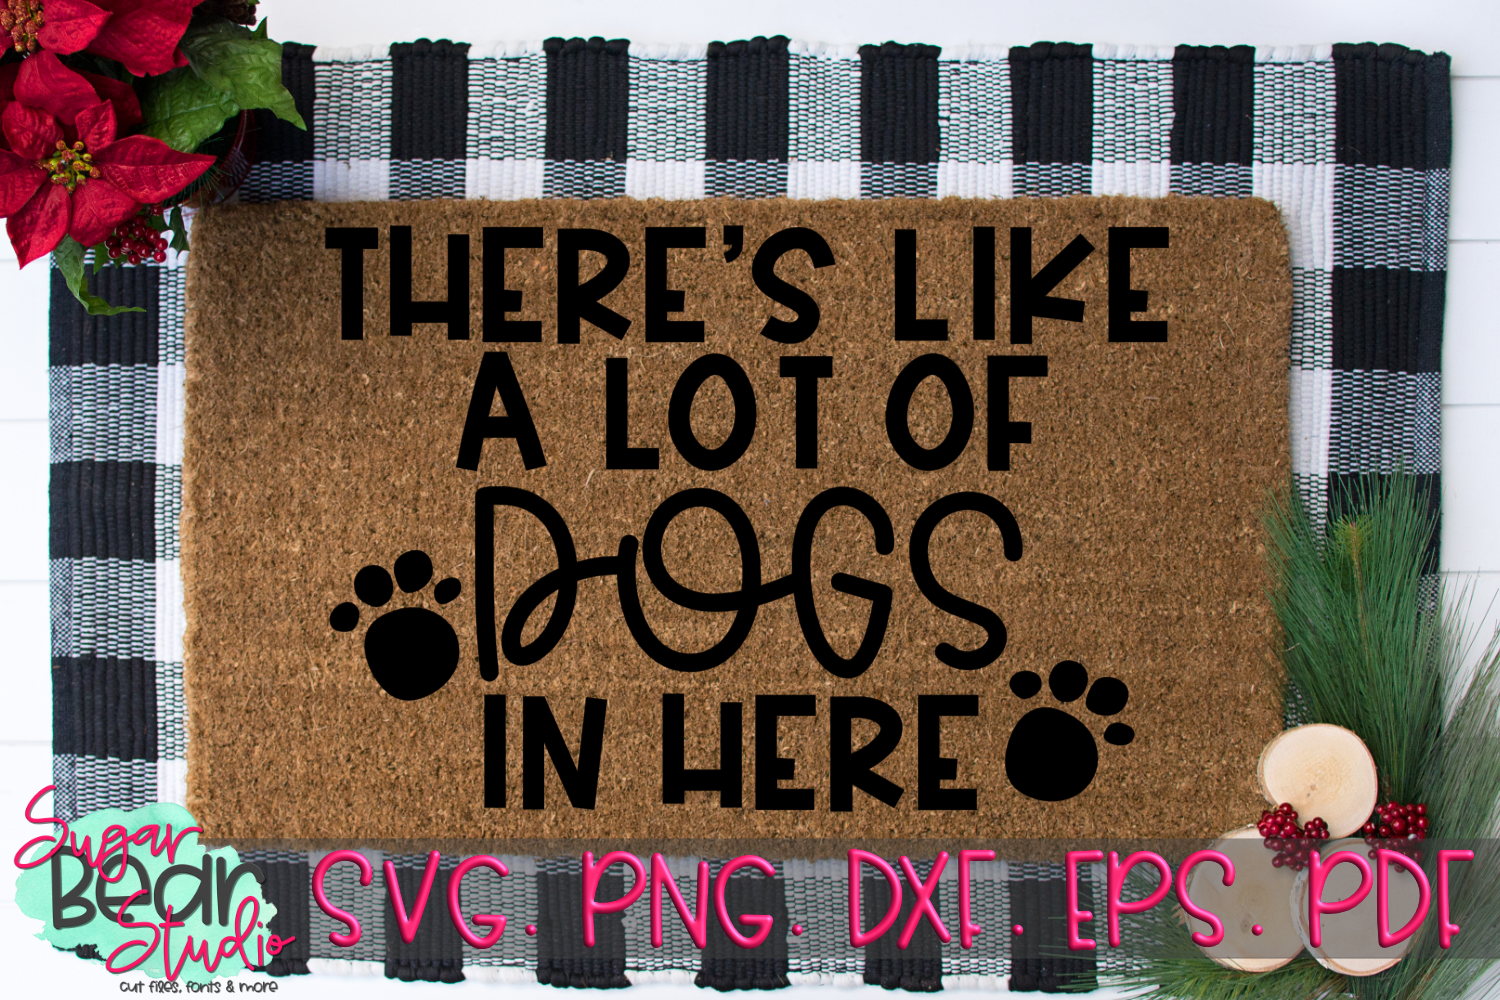 There's Like A Lot of Dogs in Here - A Doormat SVG example image 1